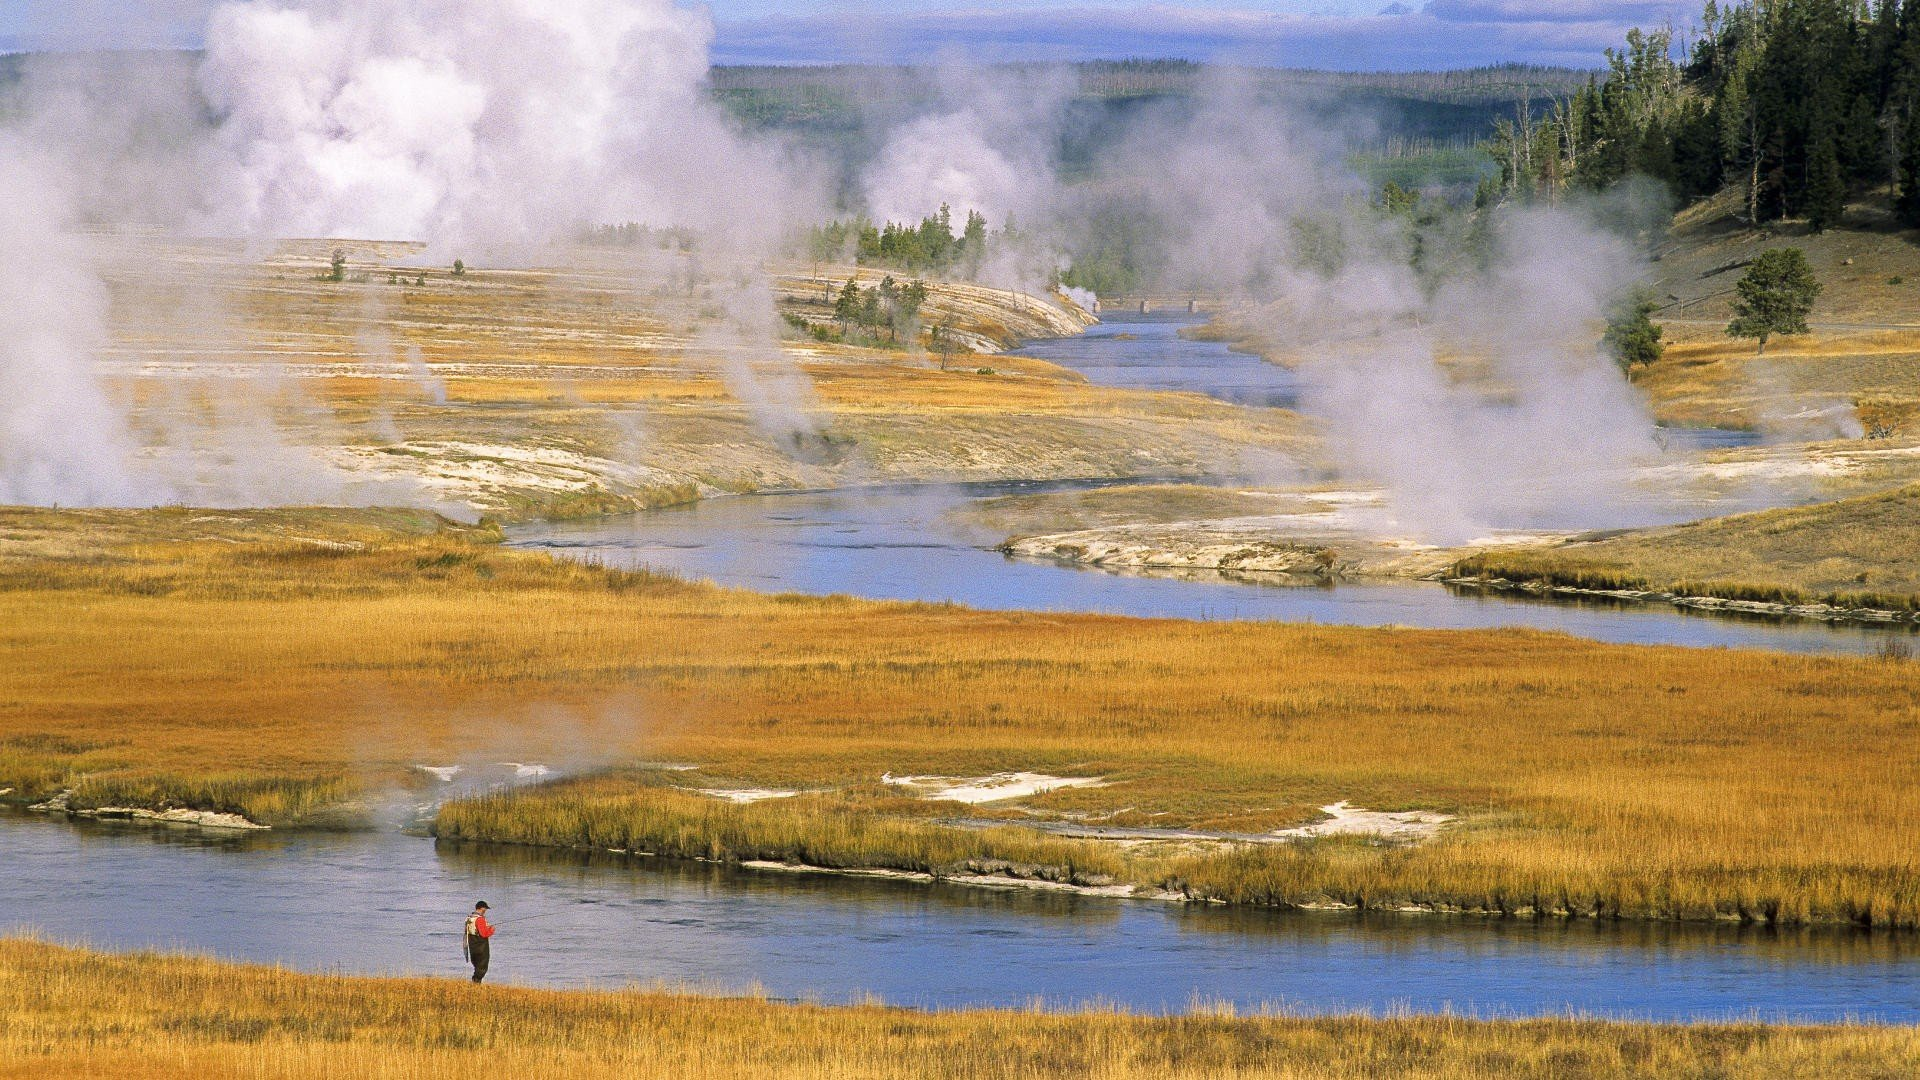 Yellowstone National Park wallpaper 1920x1080 227640 WallpaperUP 1920x1080